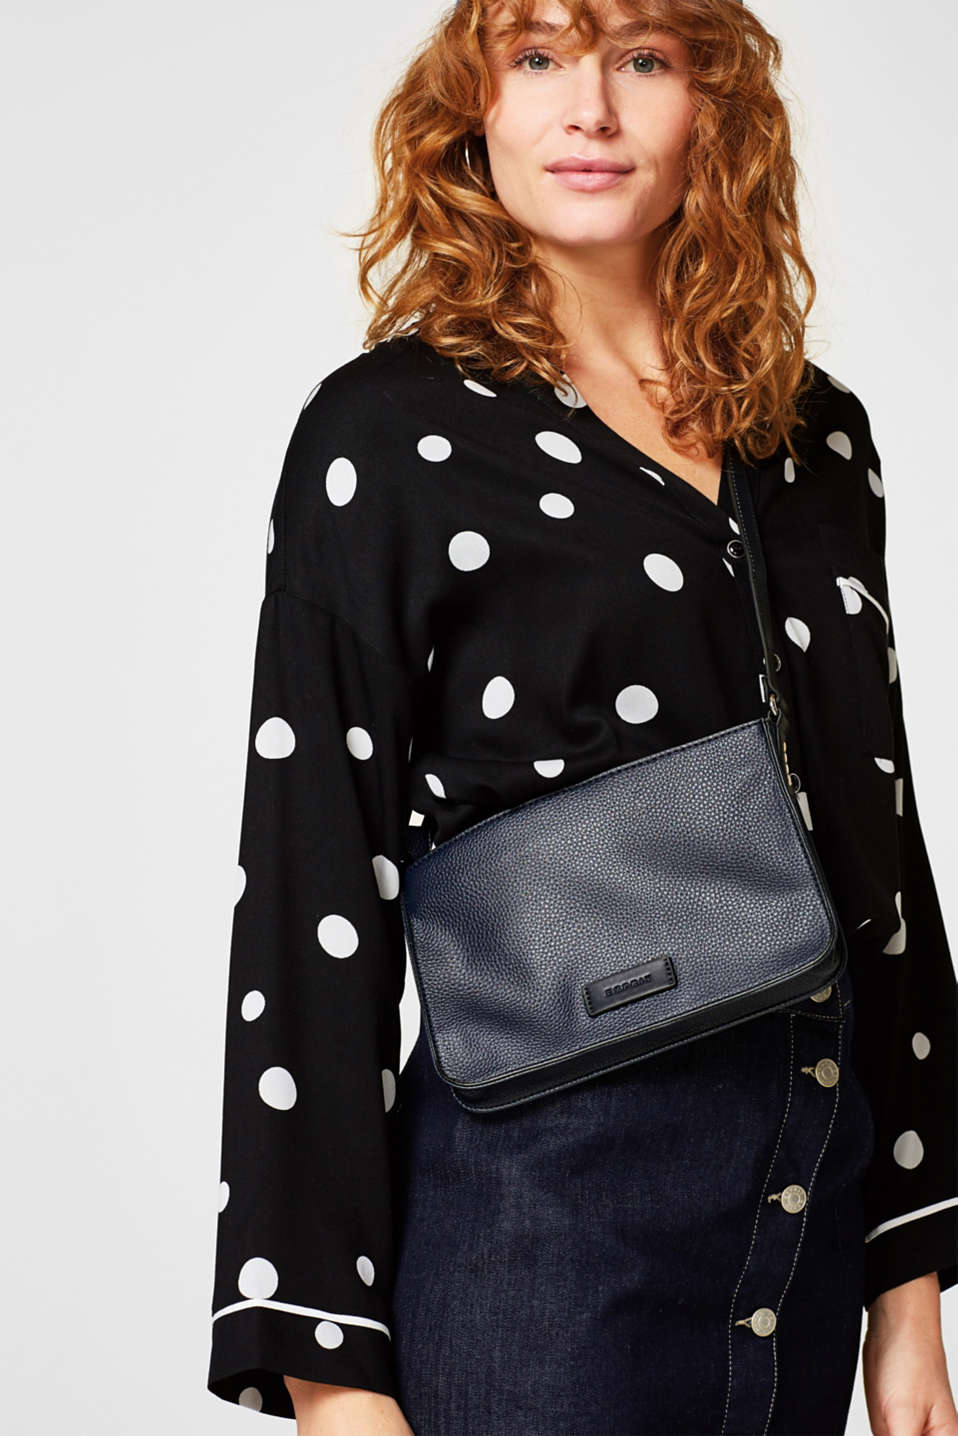 Flat shoulder bag in faux leather